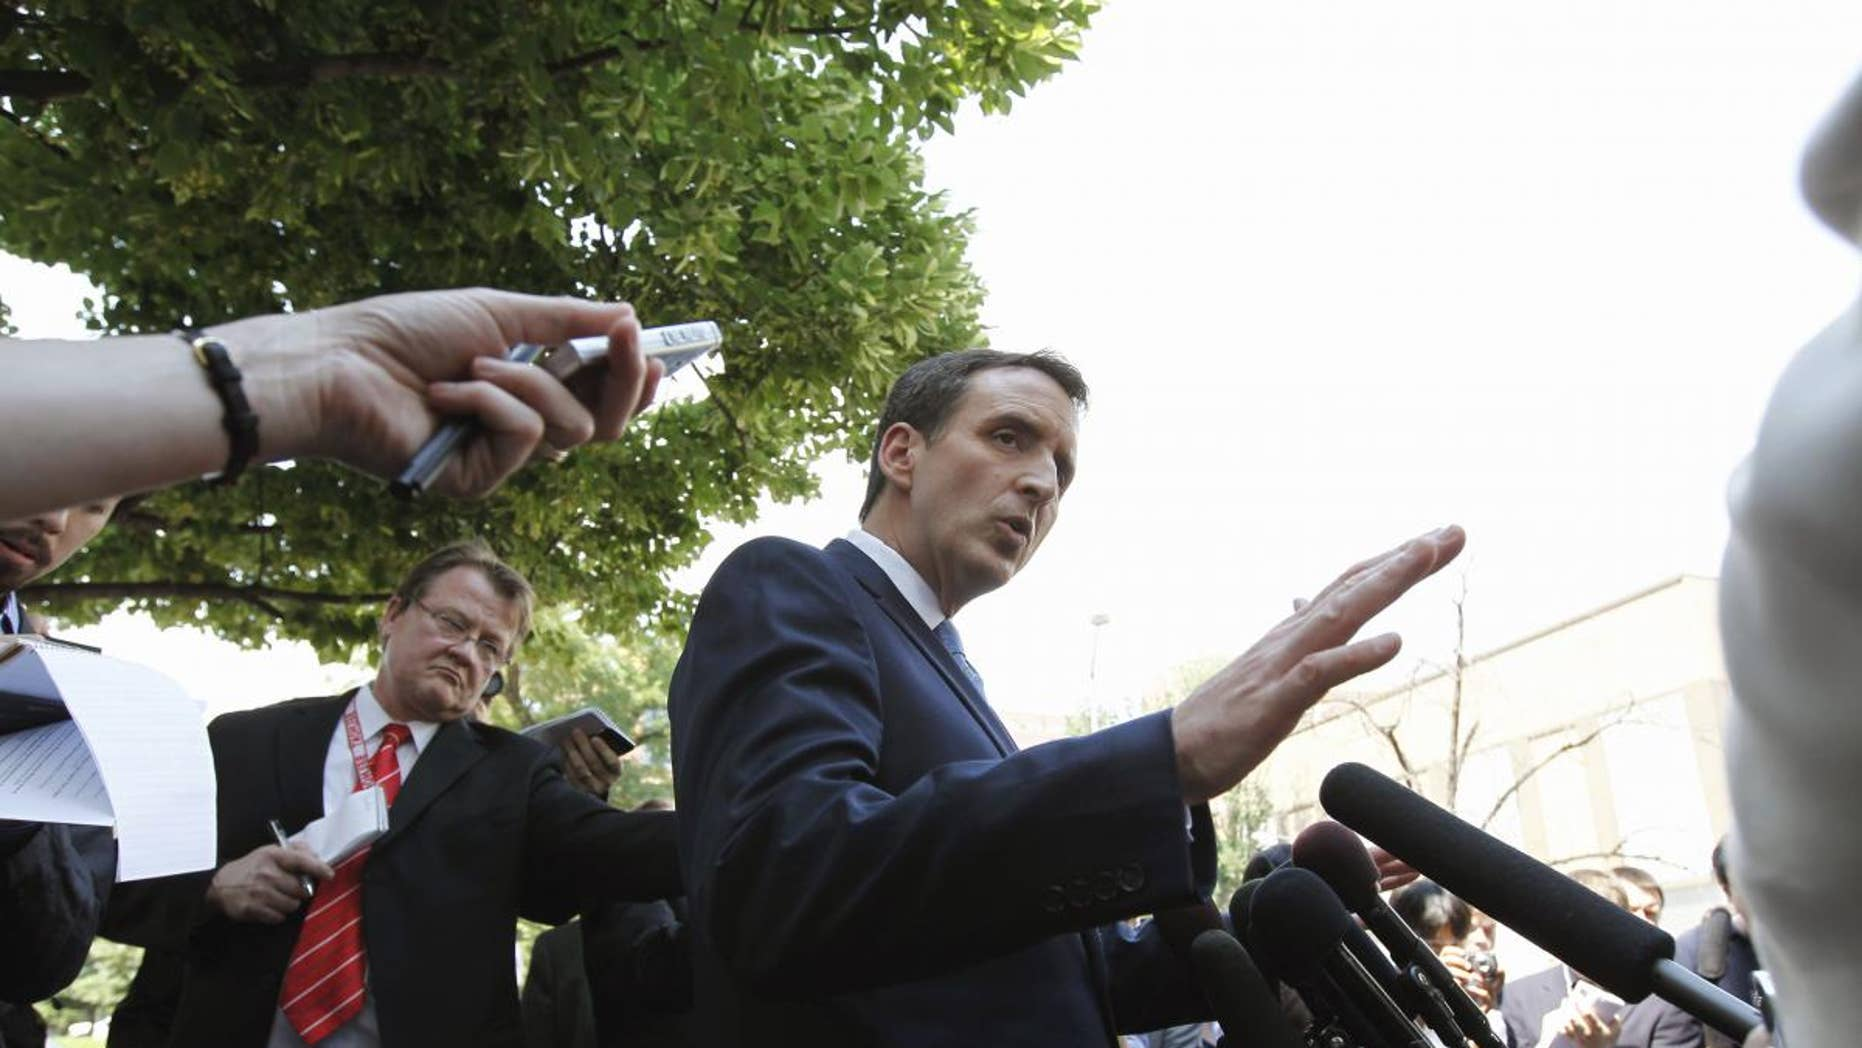 Republican presidential hopeful, former Minnesota Gov. Tim Pawlenty speaks to the media in front of the Cato Institute in Washington, Wednesday, May 25, 2011. (AP Photo/Alex Brandon)